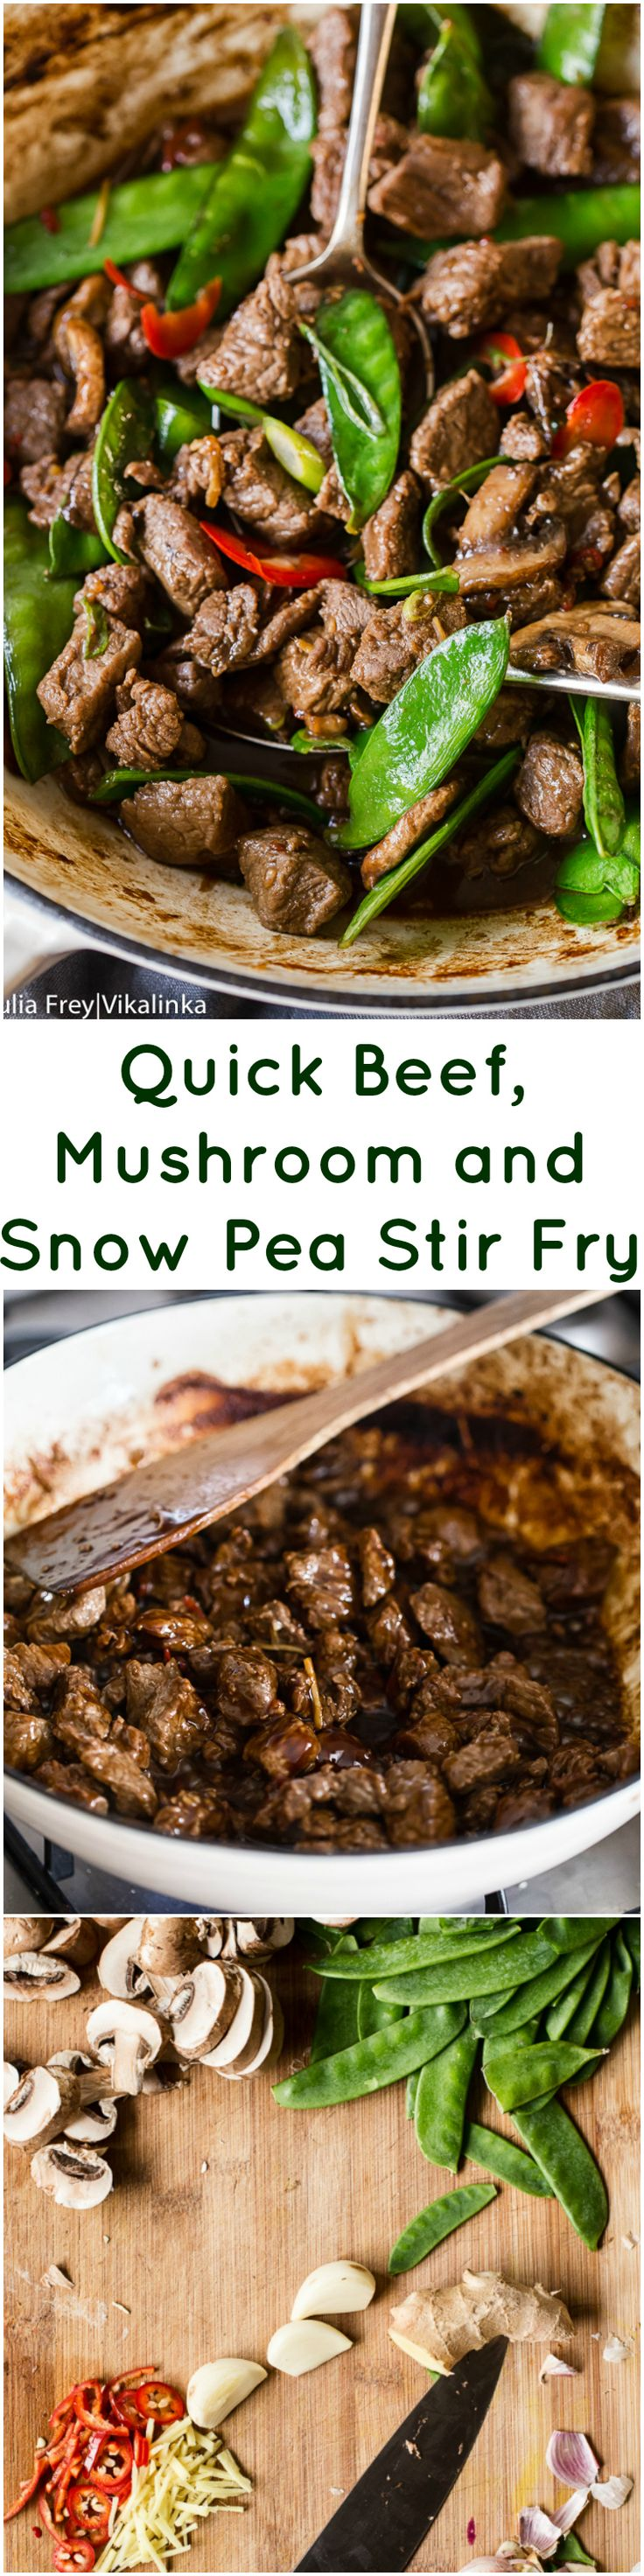 Make this beef, mushroom and snow pea stir fry when you have no time for cooking at all, it's that quick!